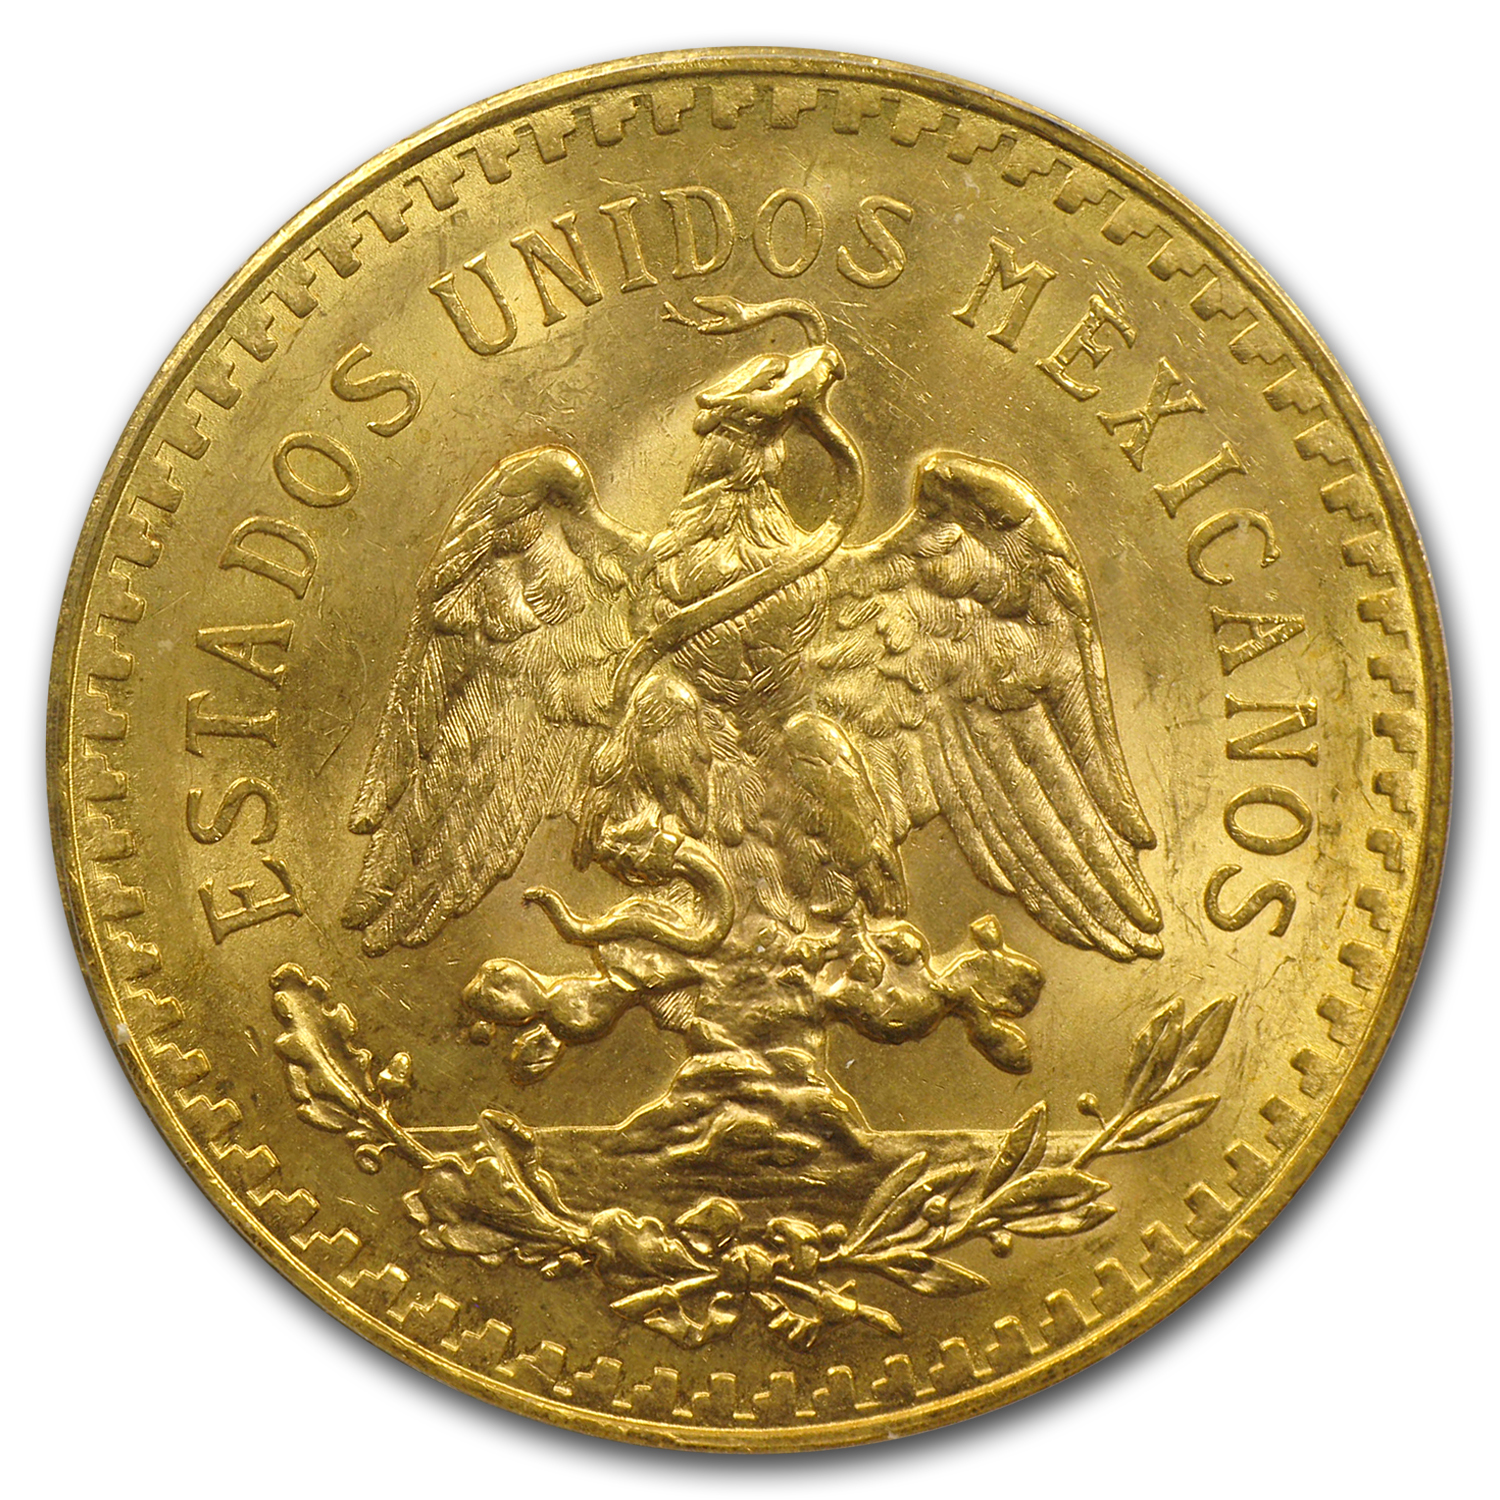 Mexico 1922 50 Pesos Gold Coin - MS-63 PCGS